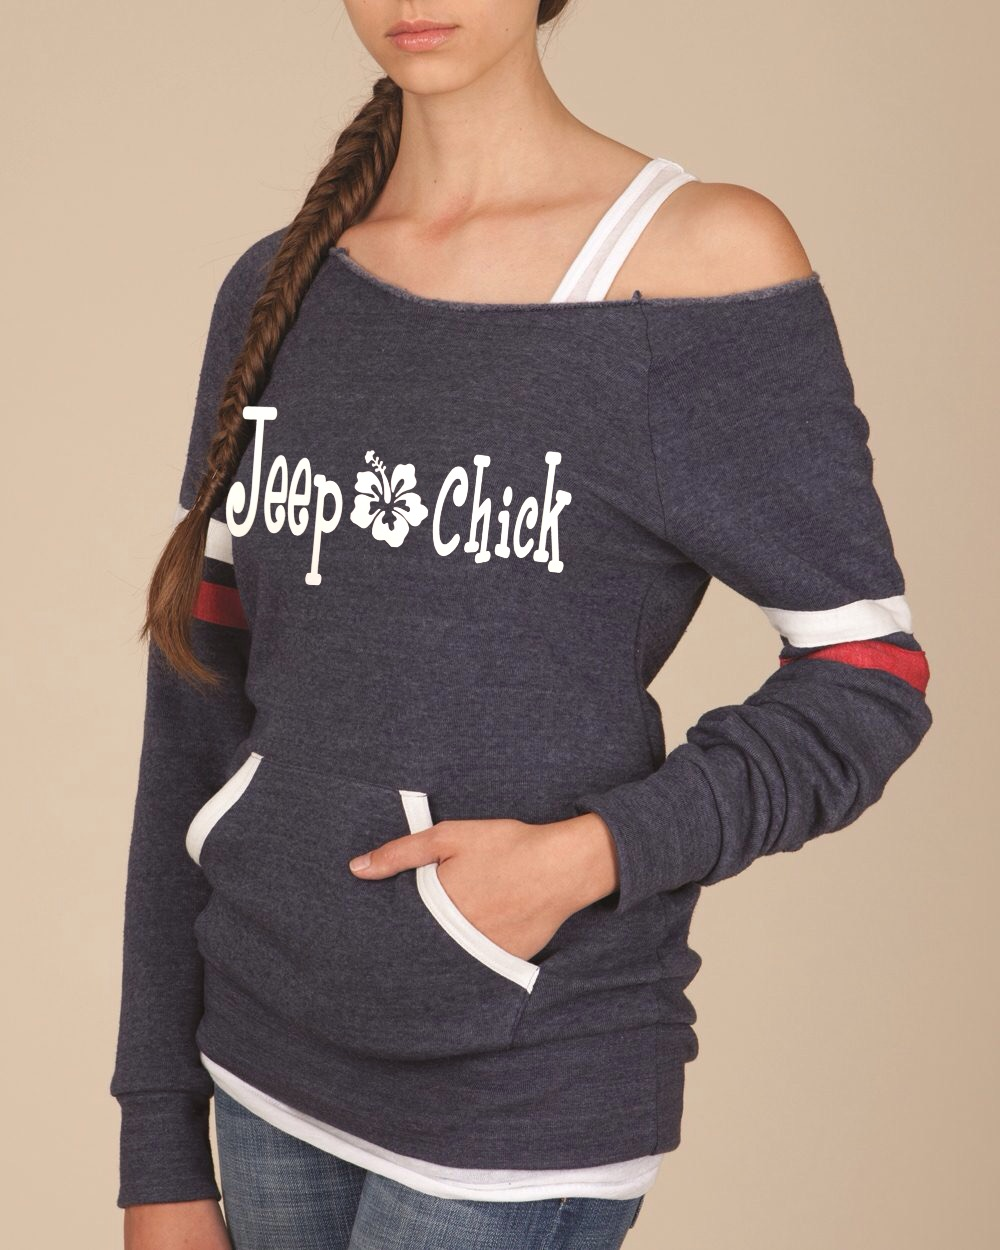 Jeep Chick.  Women's Scoop Neck Sweatshirt